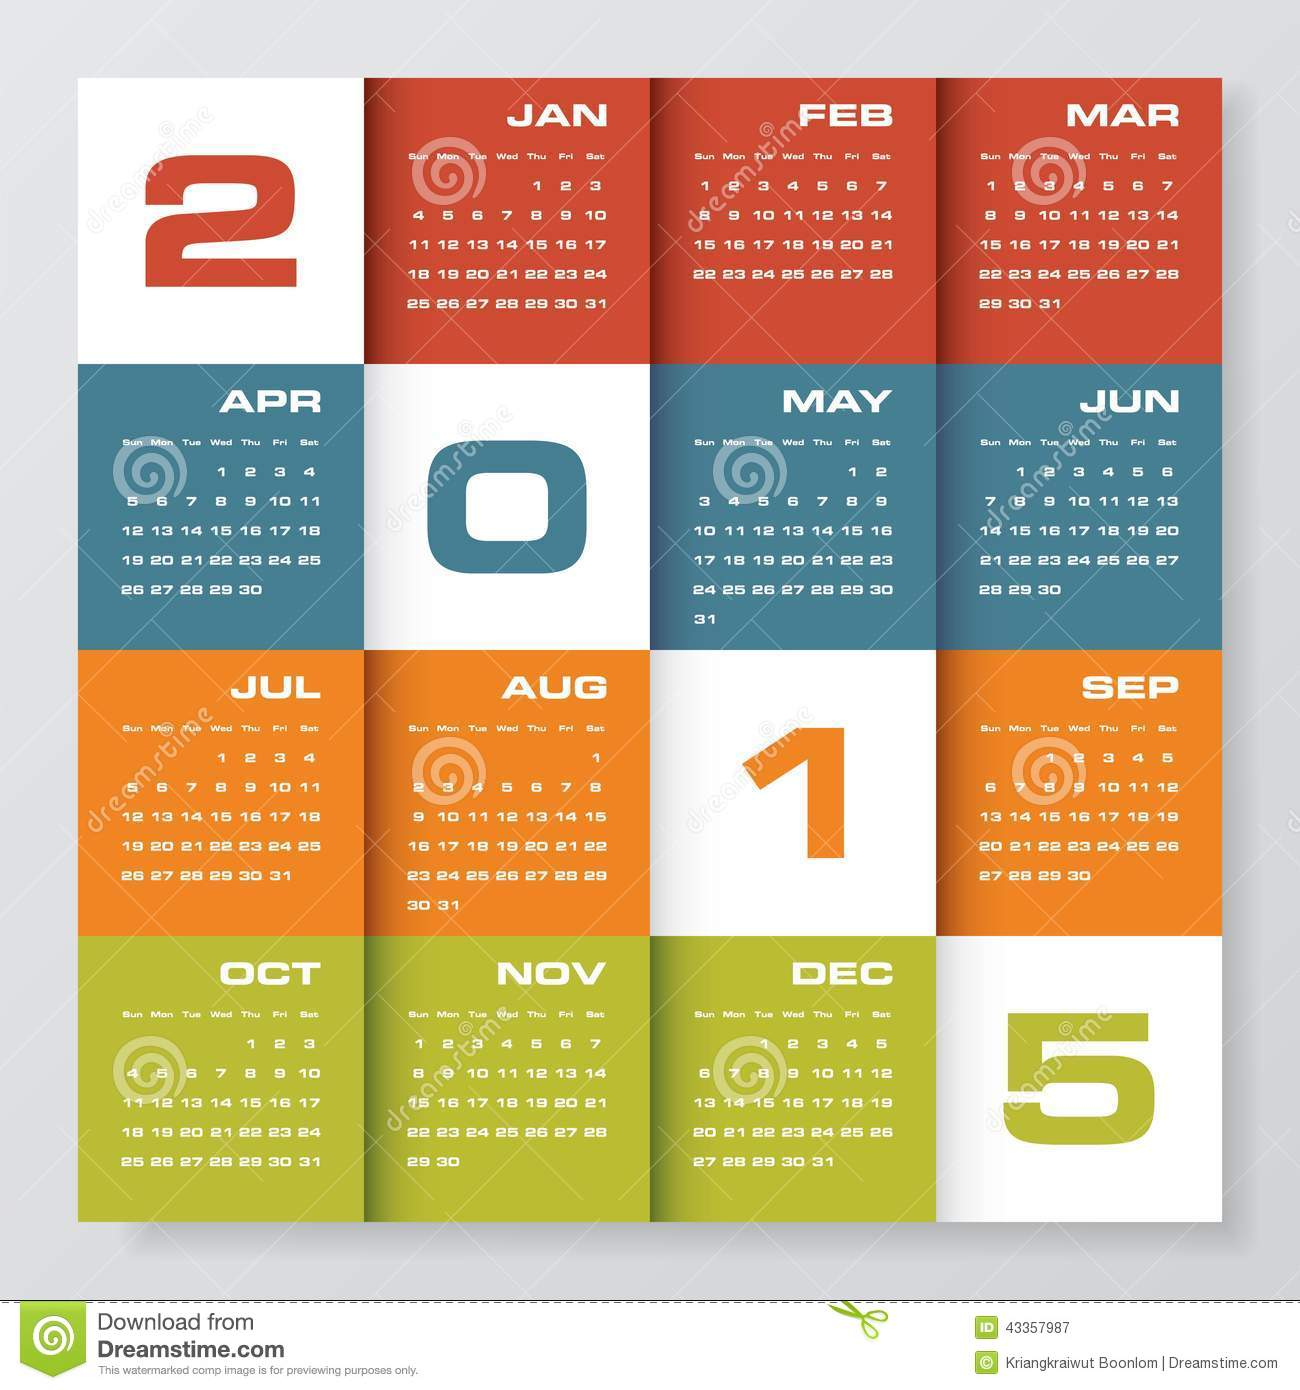 Calendar Design For Website : Simple editable vector calendar stock image